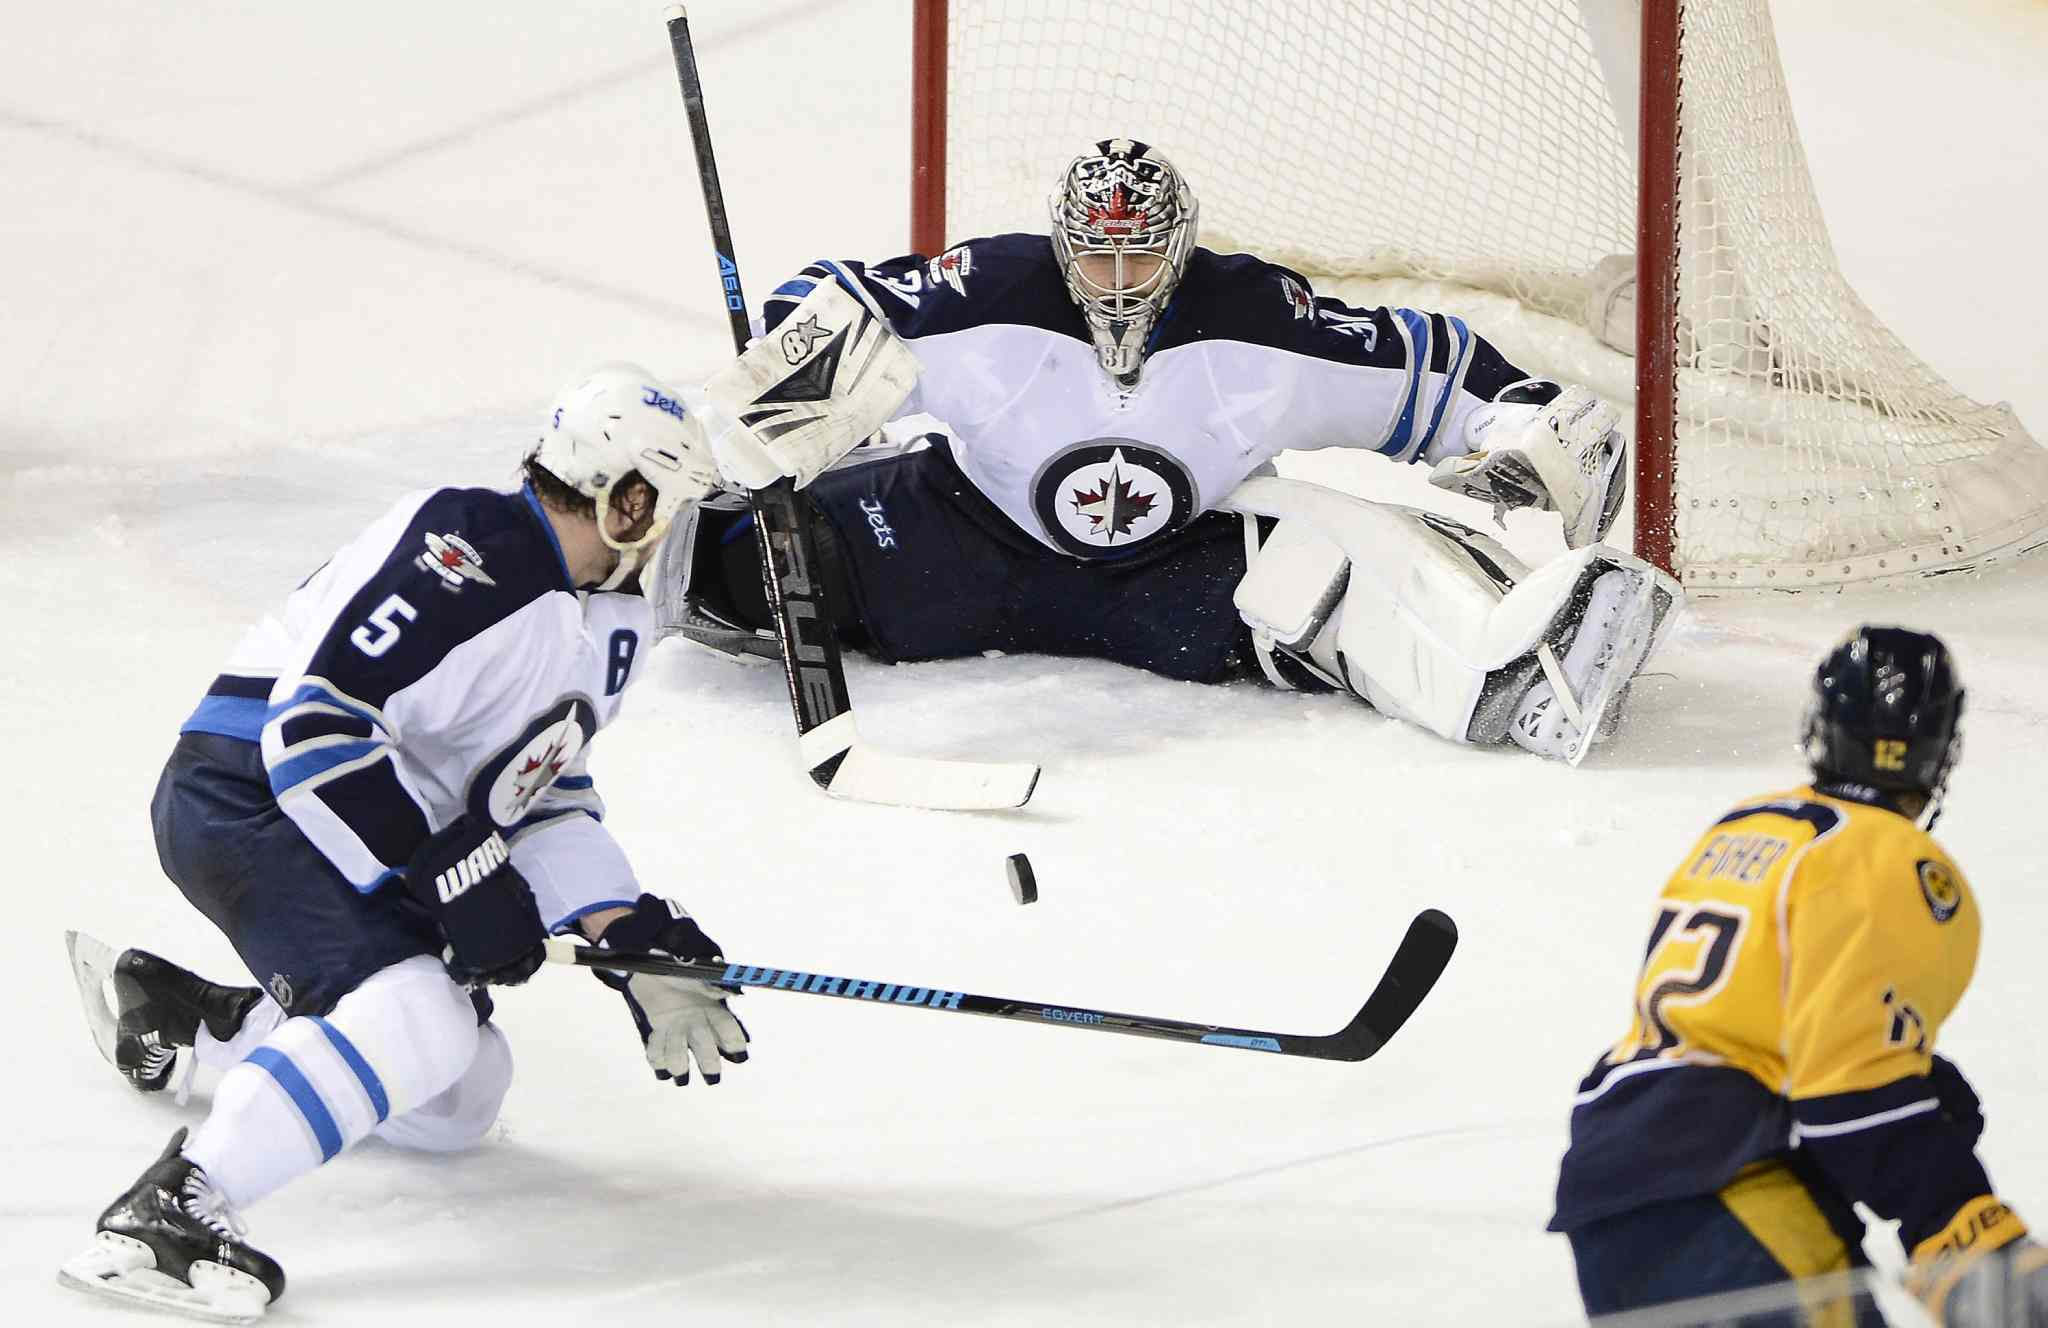 Winnipeg Jets' goalie Ondrej Pavelec (31) blocks a third-period shot from Nashville Predators' forward Mike Fisher (12) as Jets' defenseman Mark Stuart (5) tries to clear the puck.